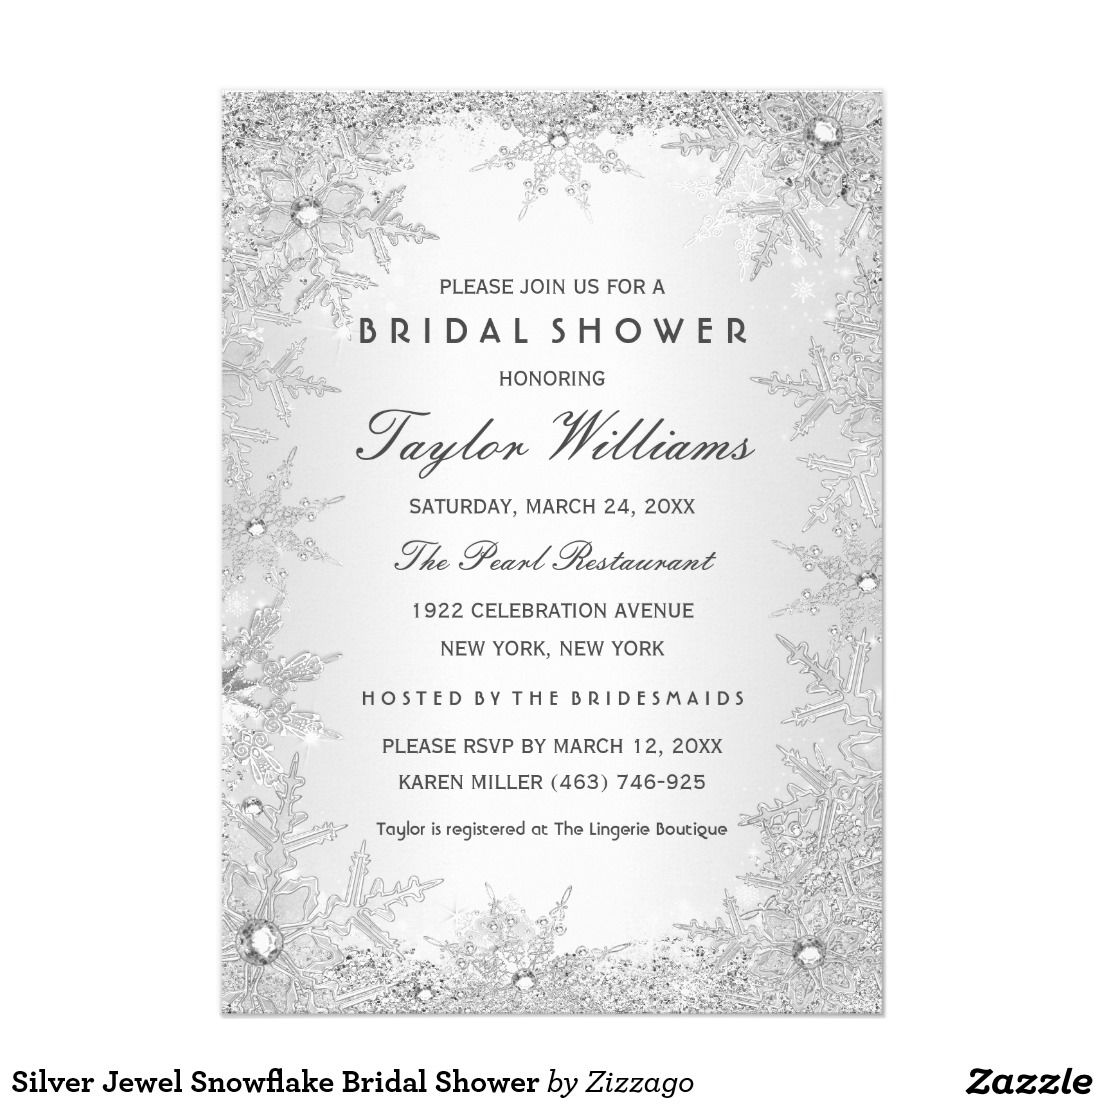 gorgeous silver jewel snowflake bridal shower 5x7 paper invitation card these are so pretty for a winter bridal shower so chic and trendy